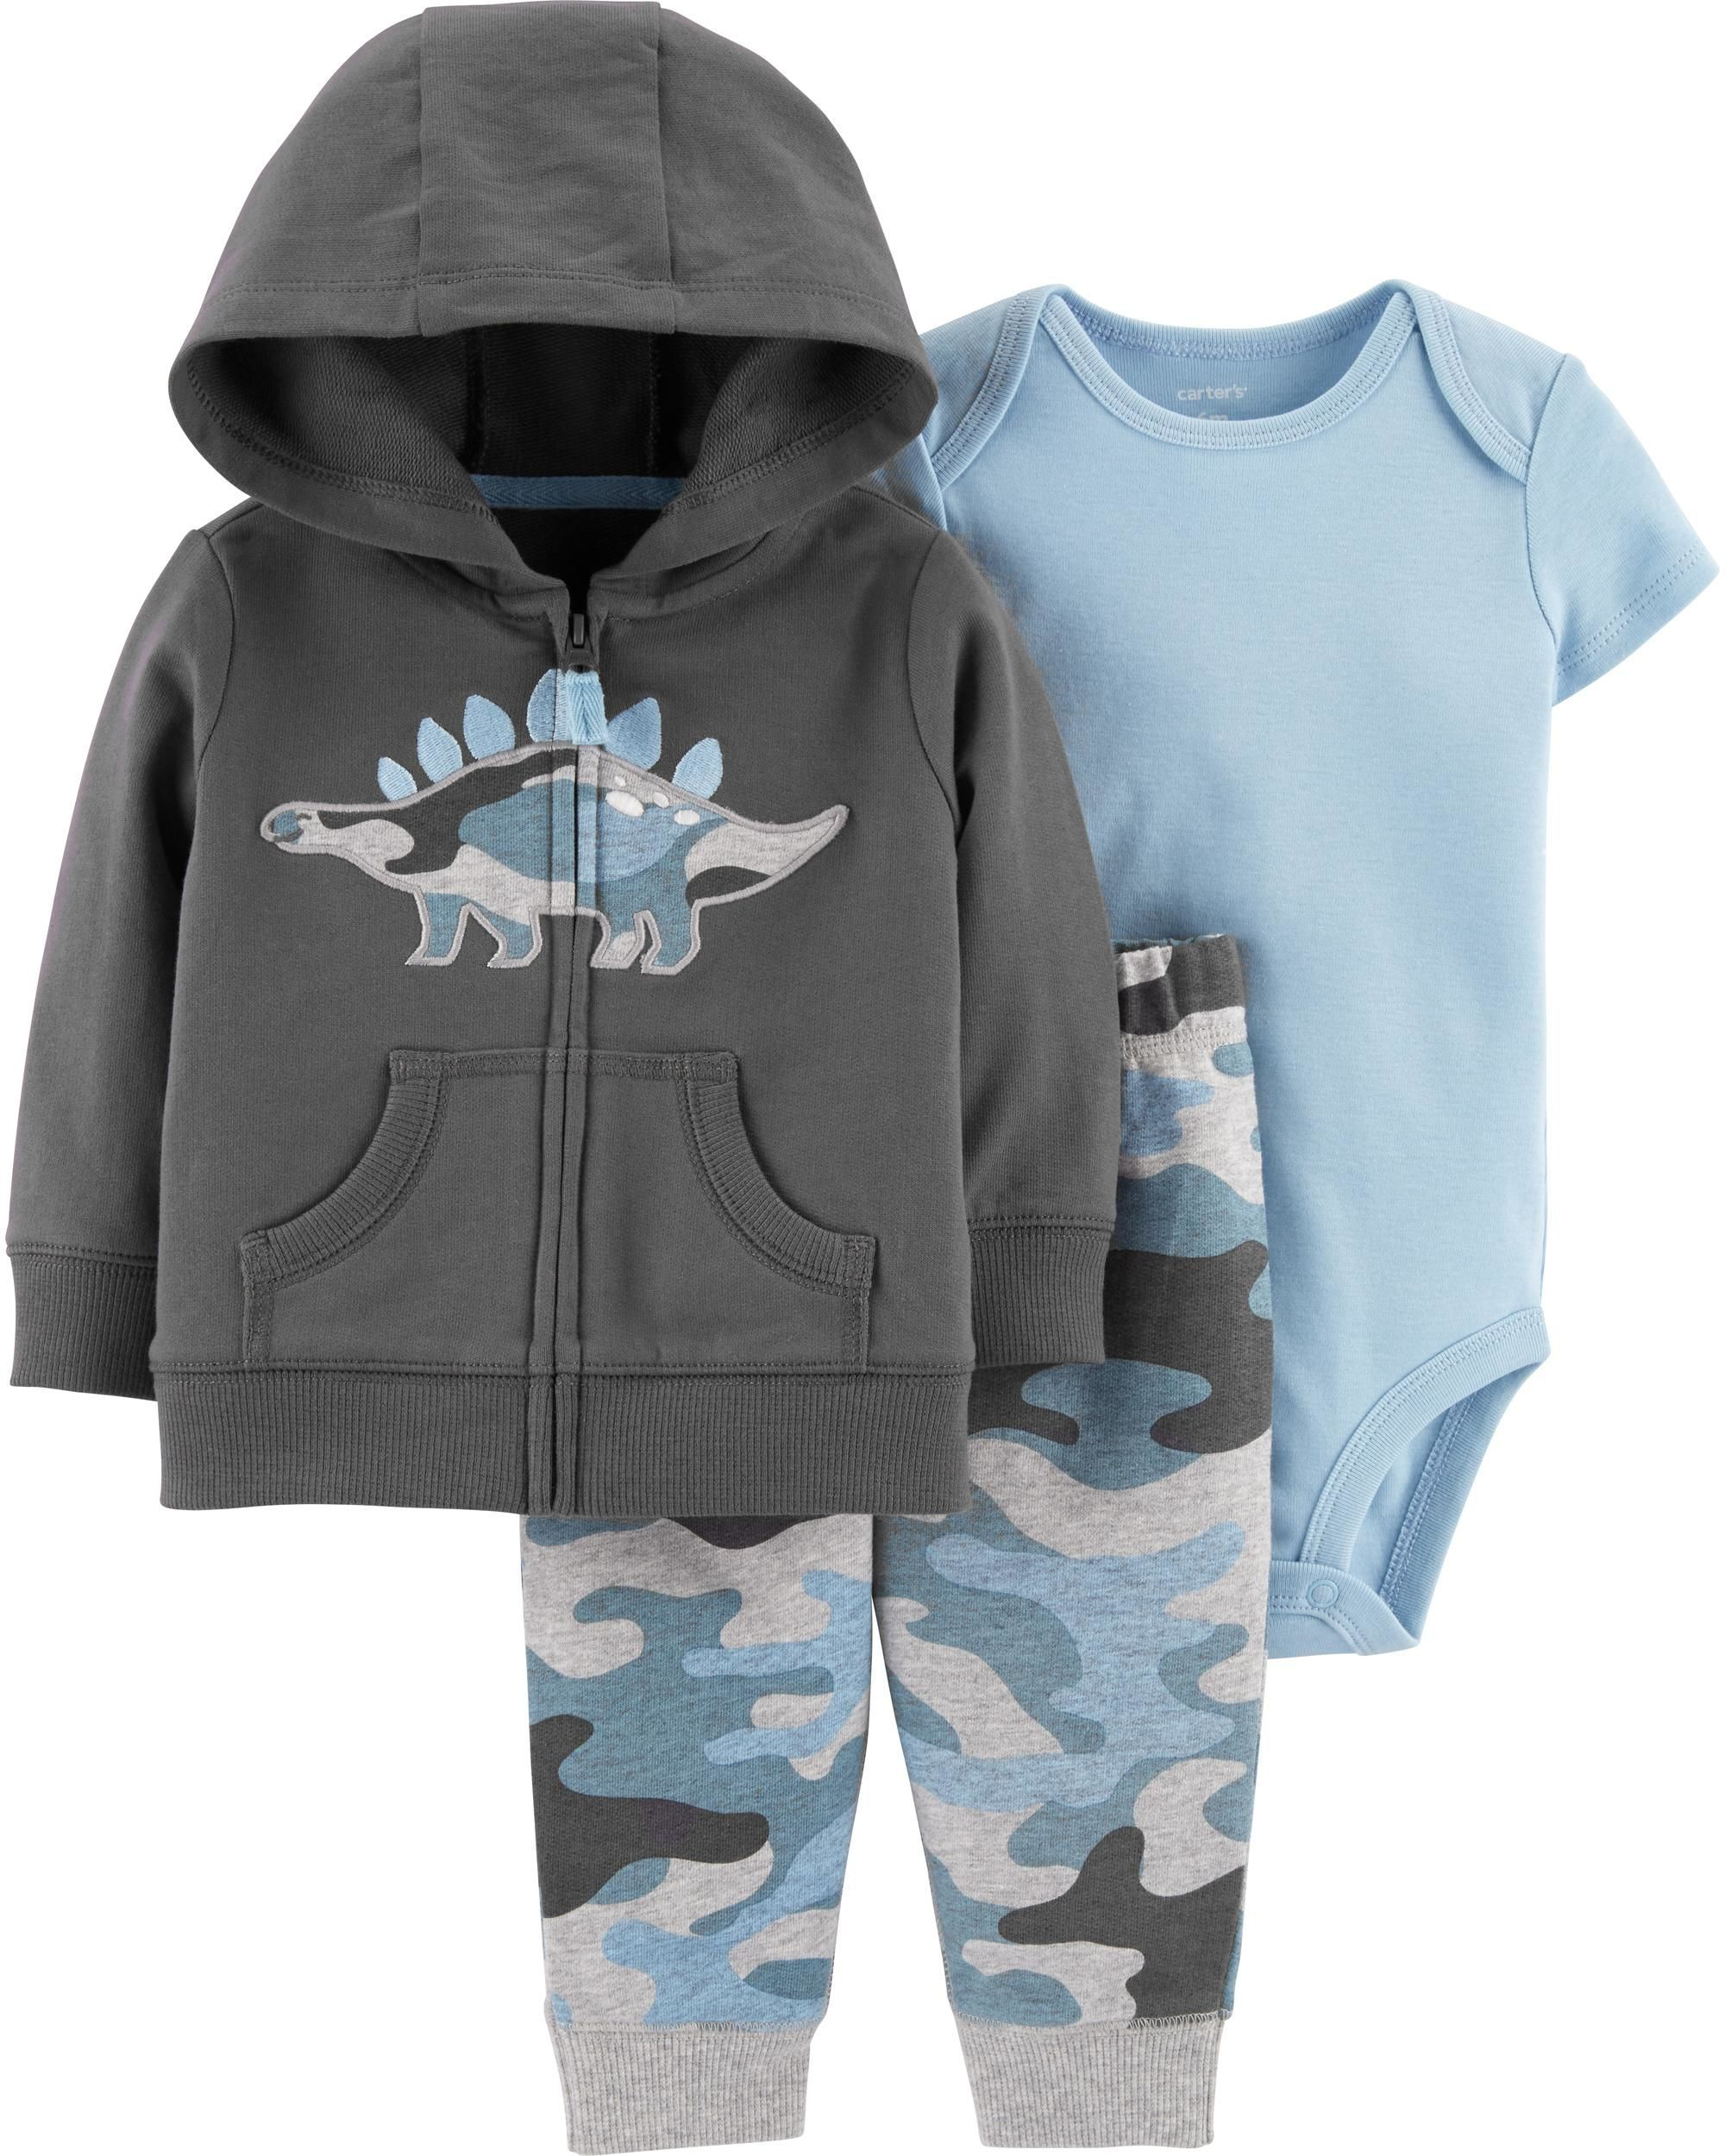 901748000 3-Piece Little Jacket Set | Baby Clothes | Carters baby clothes ...